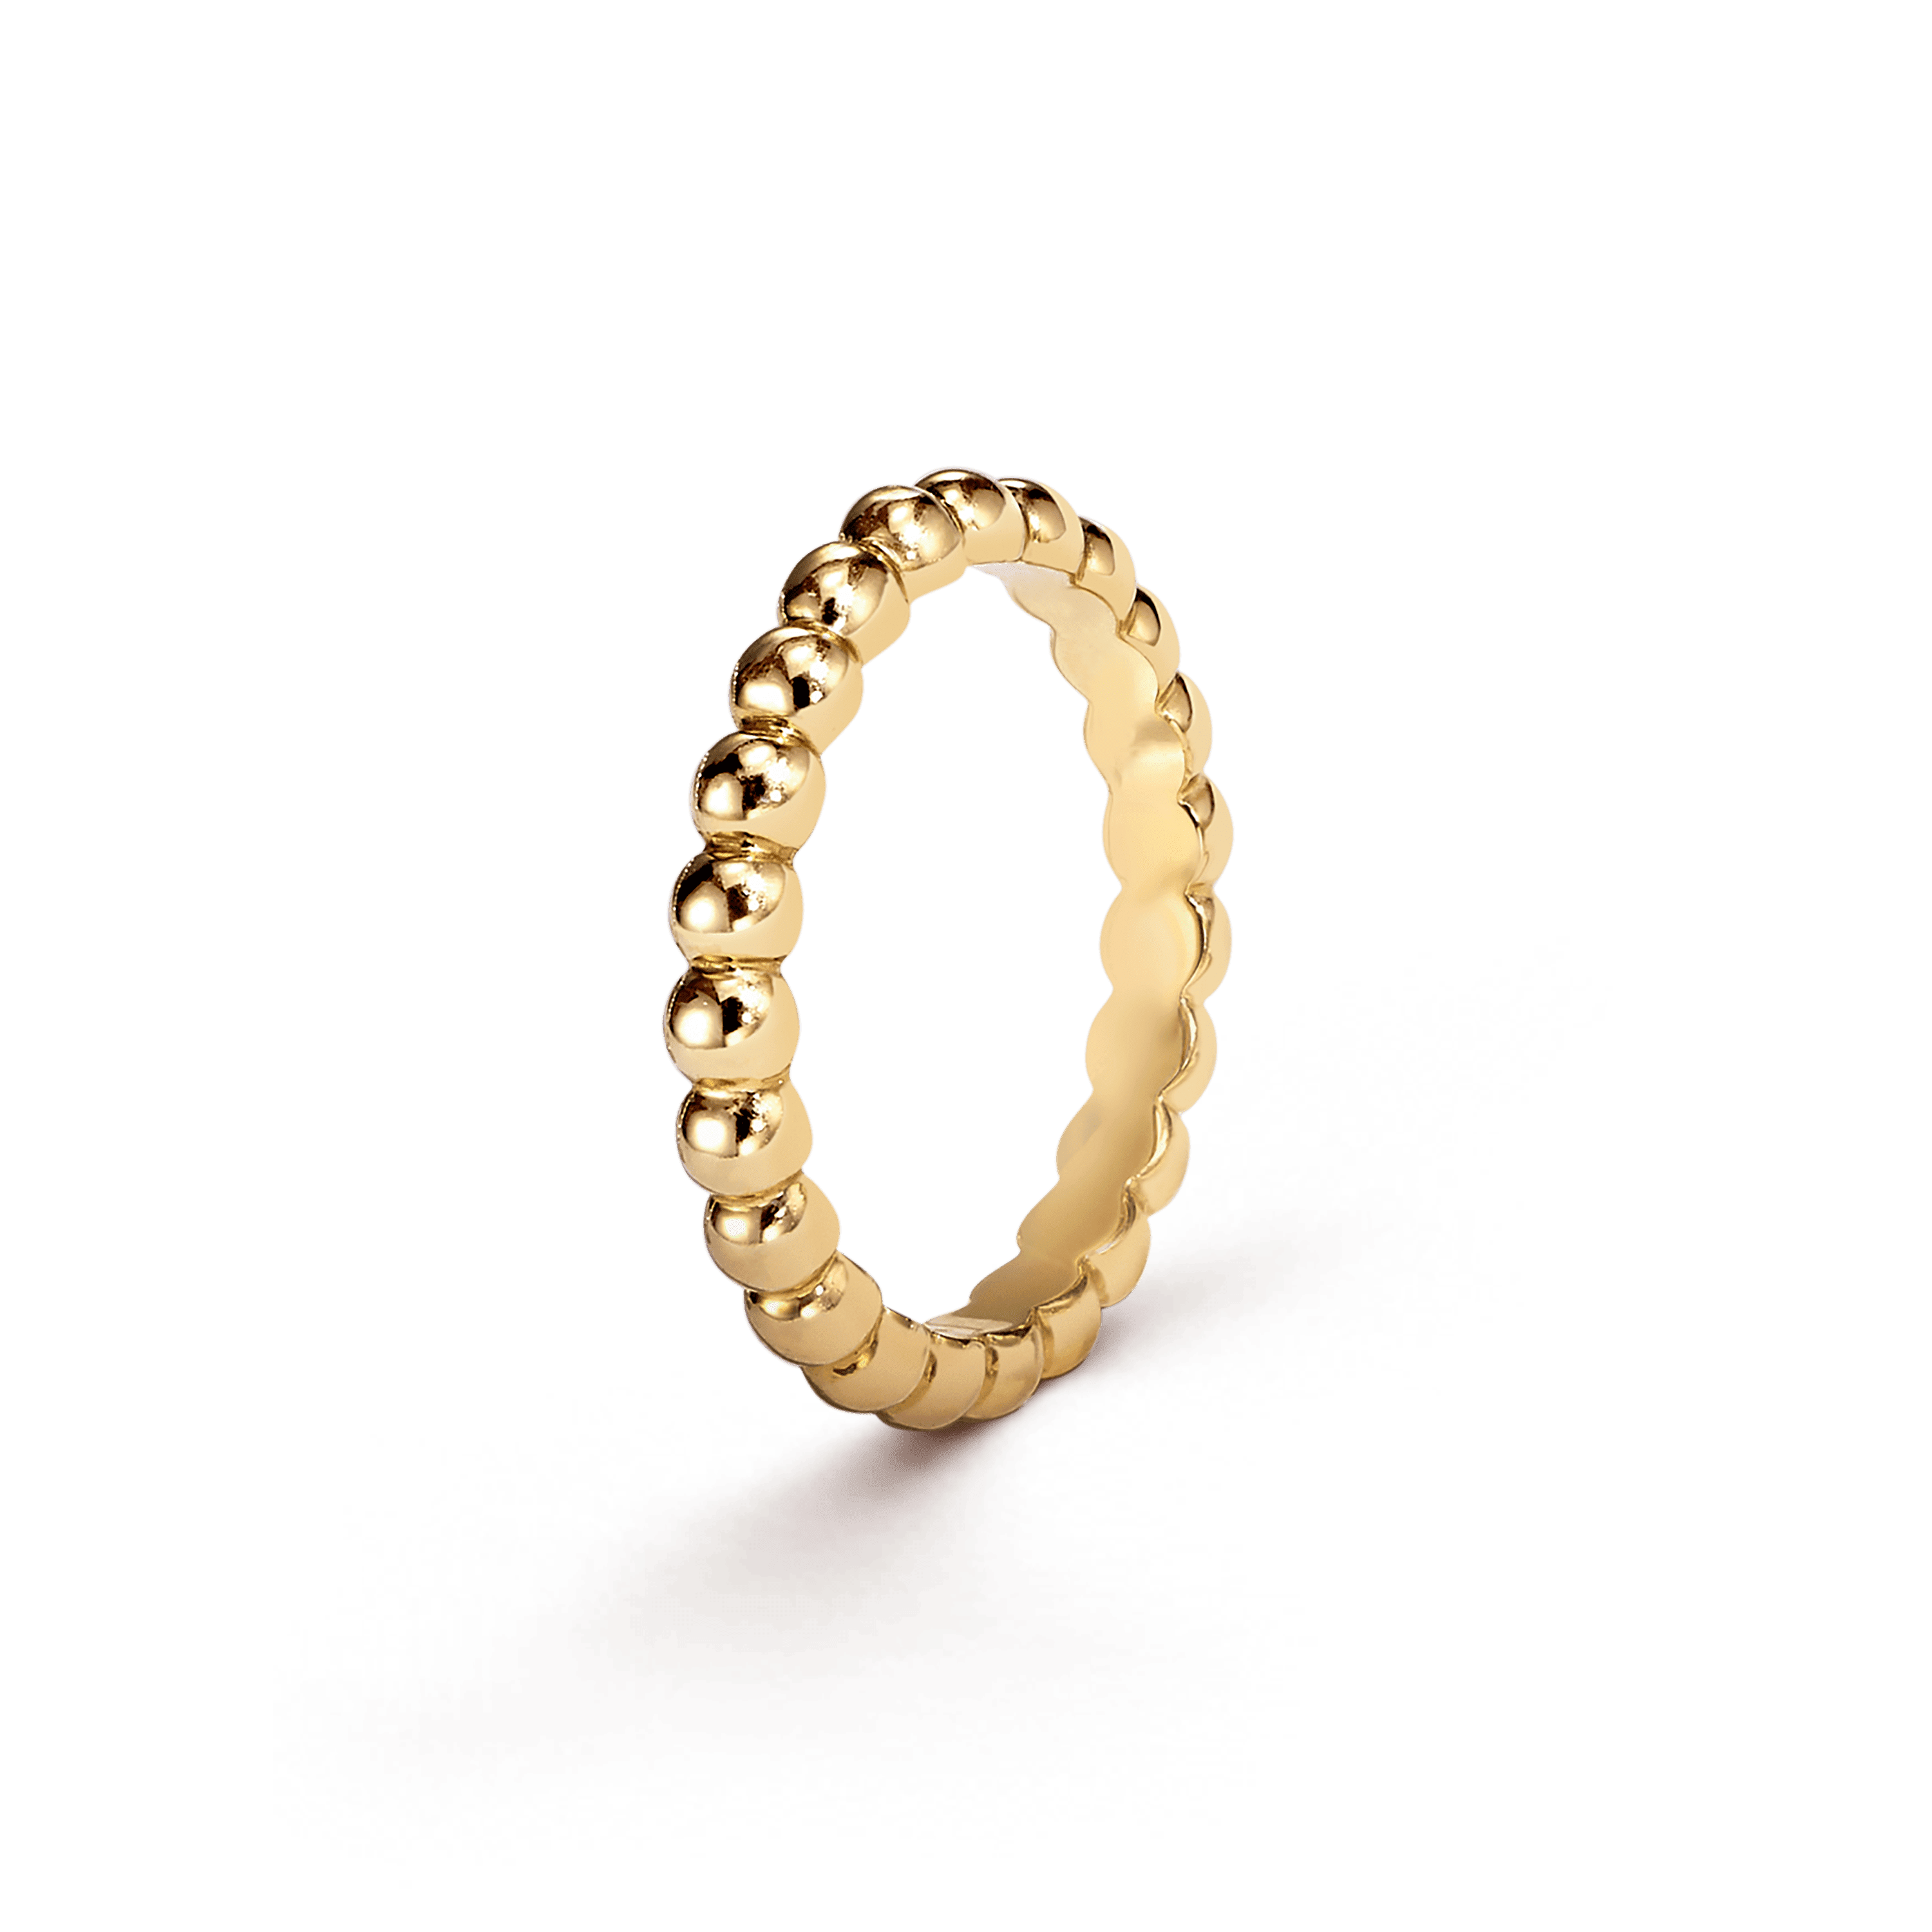 Perlée pearls of gold ring, medium model, - 3|4 View - VCARO3Y500 - Van Cleef & Arpels